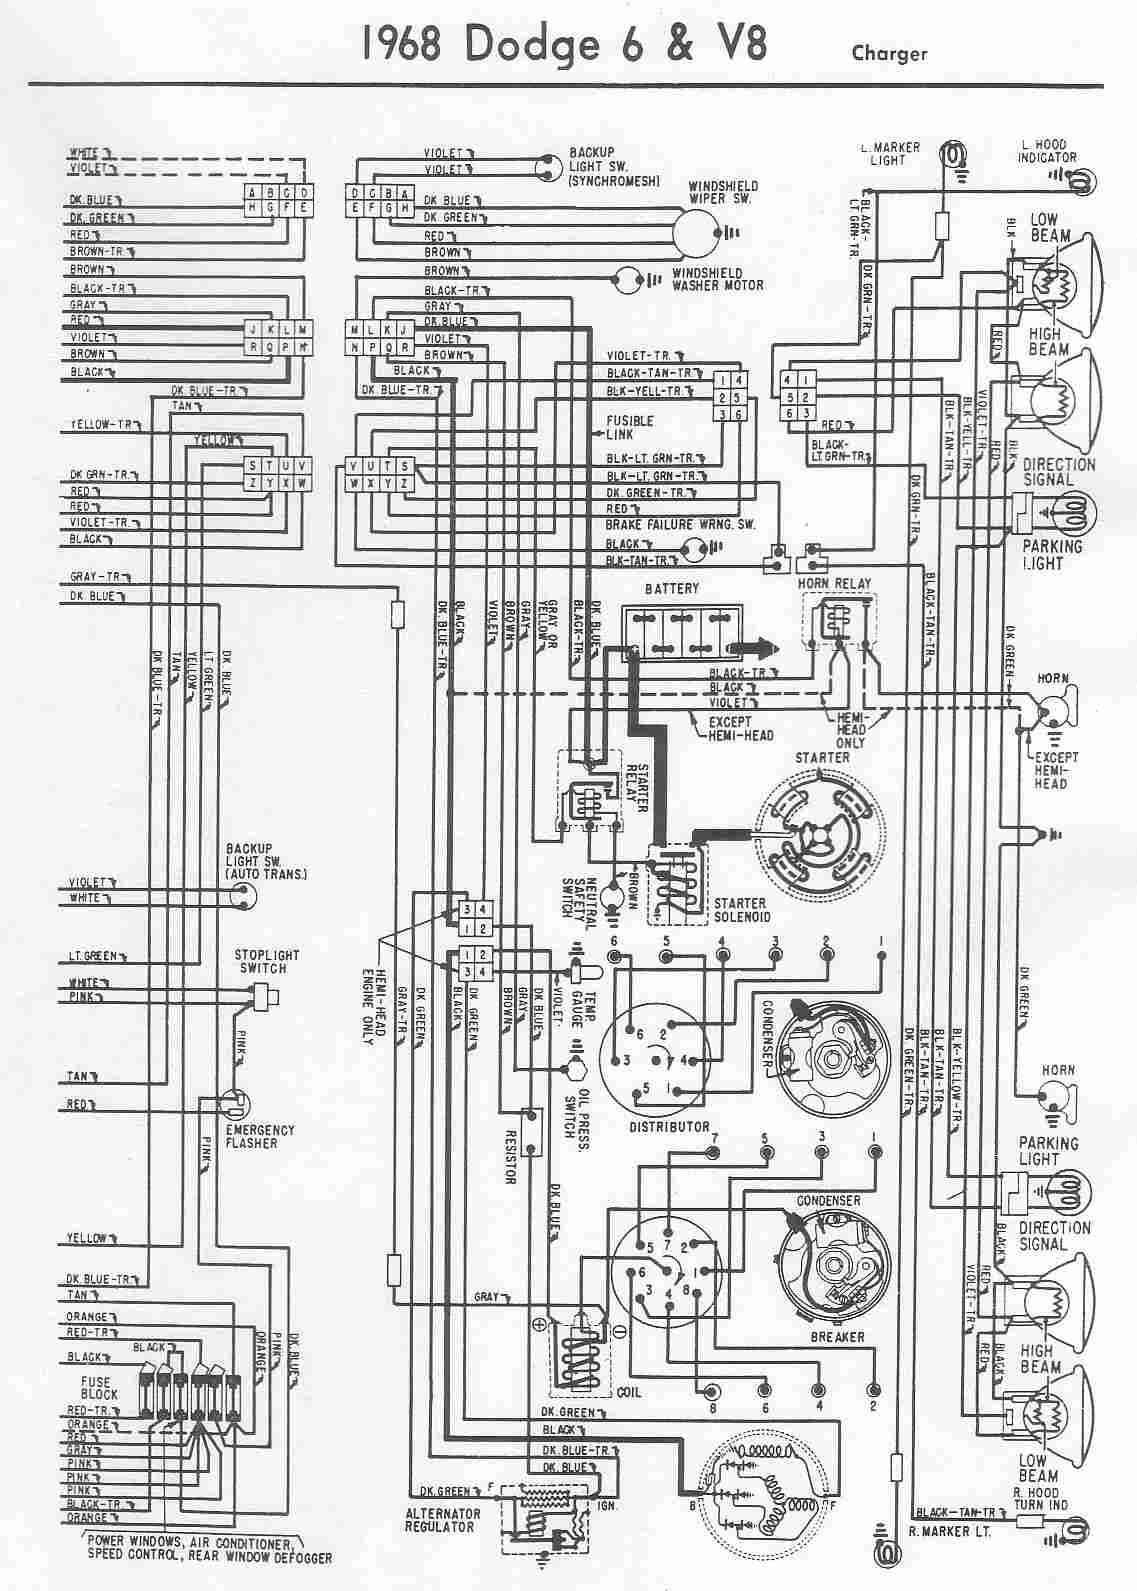 Dodge Car Manuals Wiring Diagrams Pdf Fault Codes Harness For 49 Ford F1 Free Download Diagram Schematic